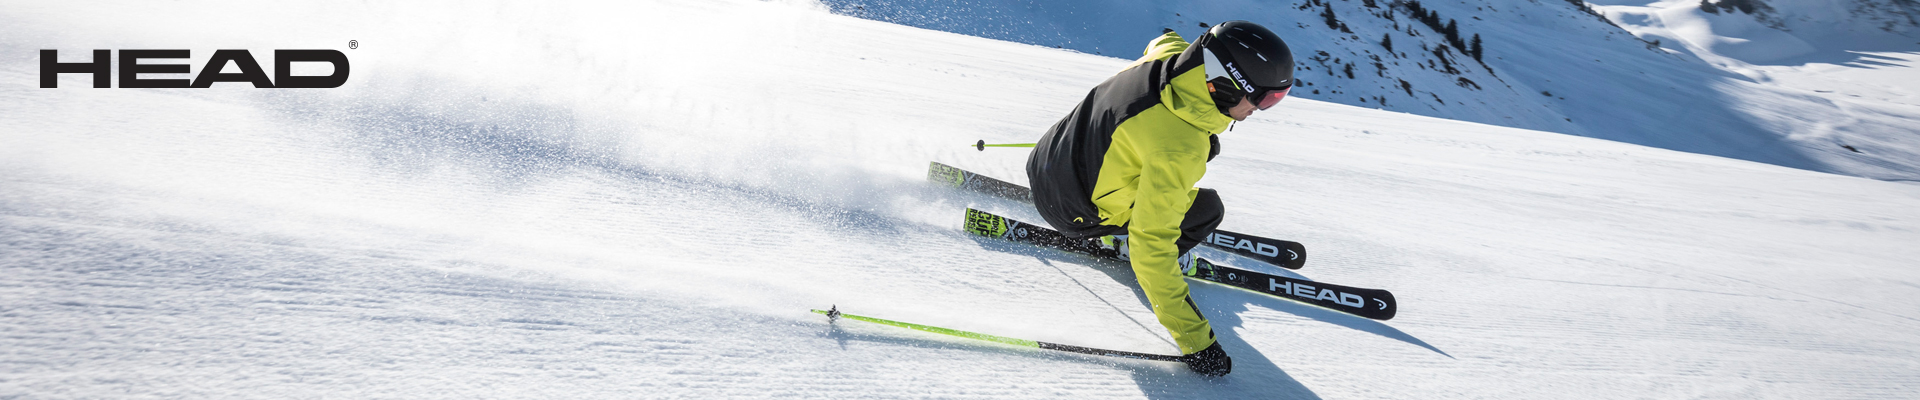 Shop Head skis & equipment at your local Source For Sports ski & snowboard store